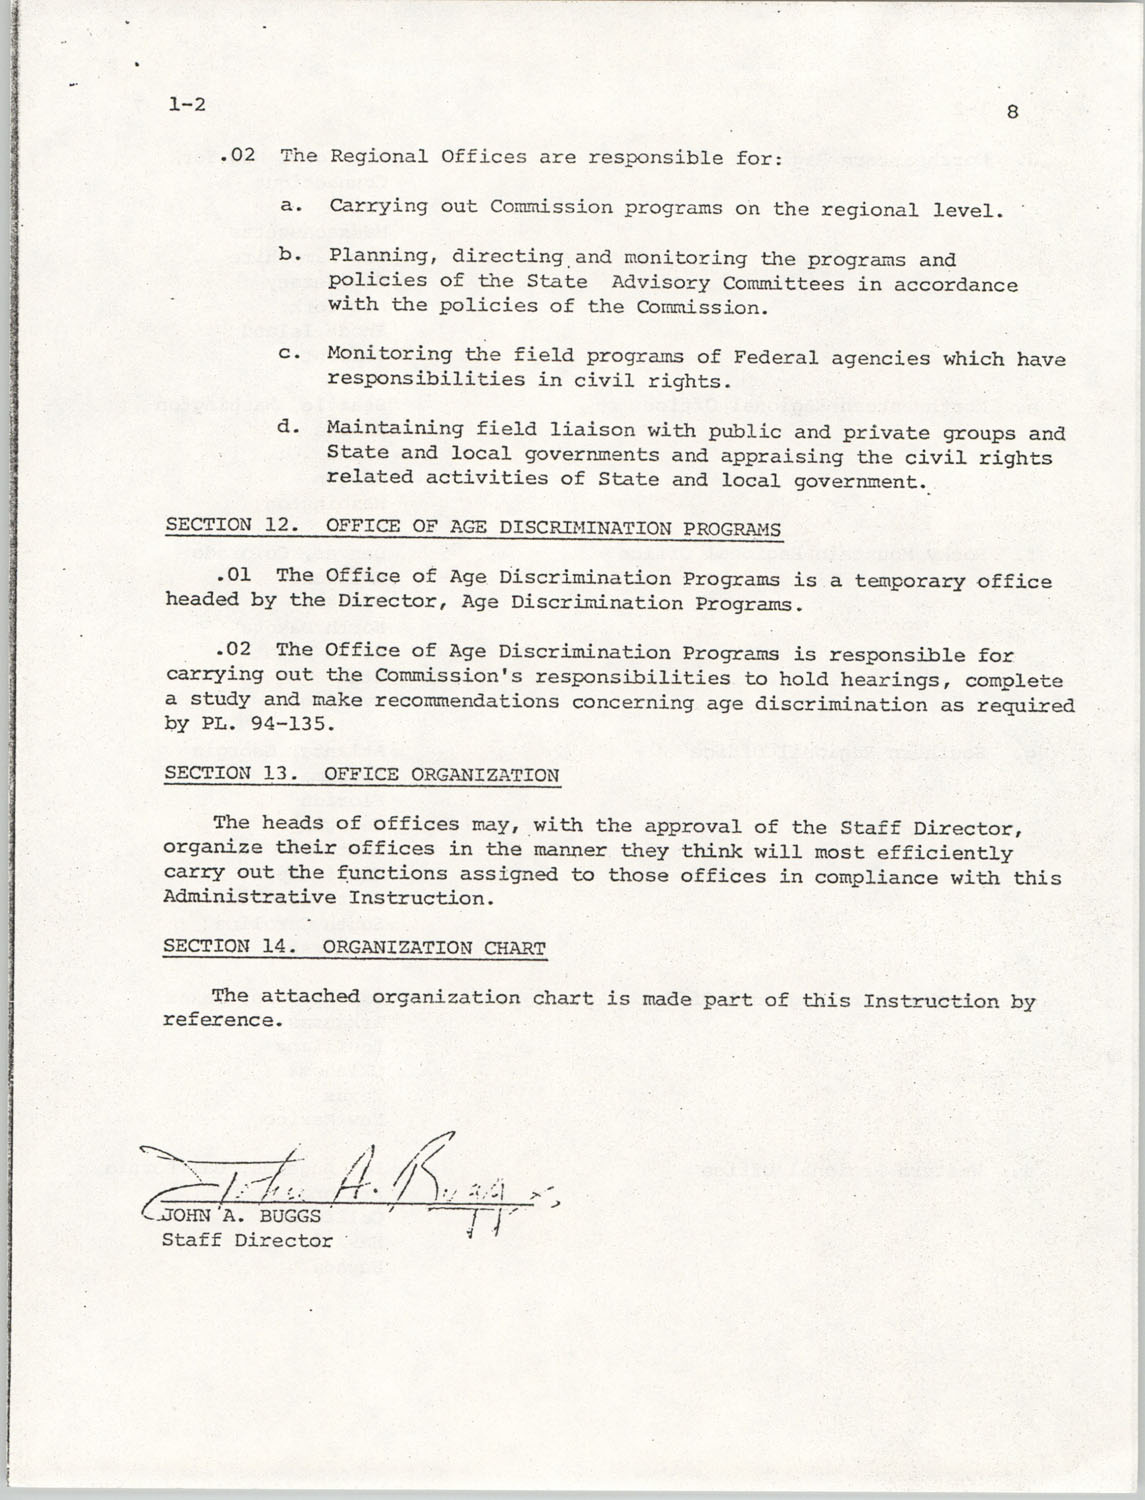 Administrative Manual Instruction 1-2, Organization of the U.S. Commission on Civil Rights, Page 8